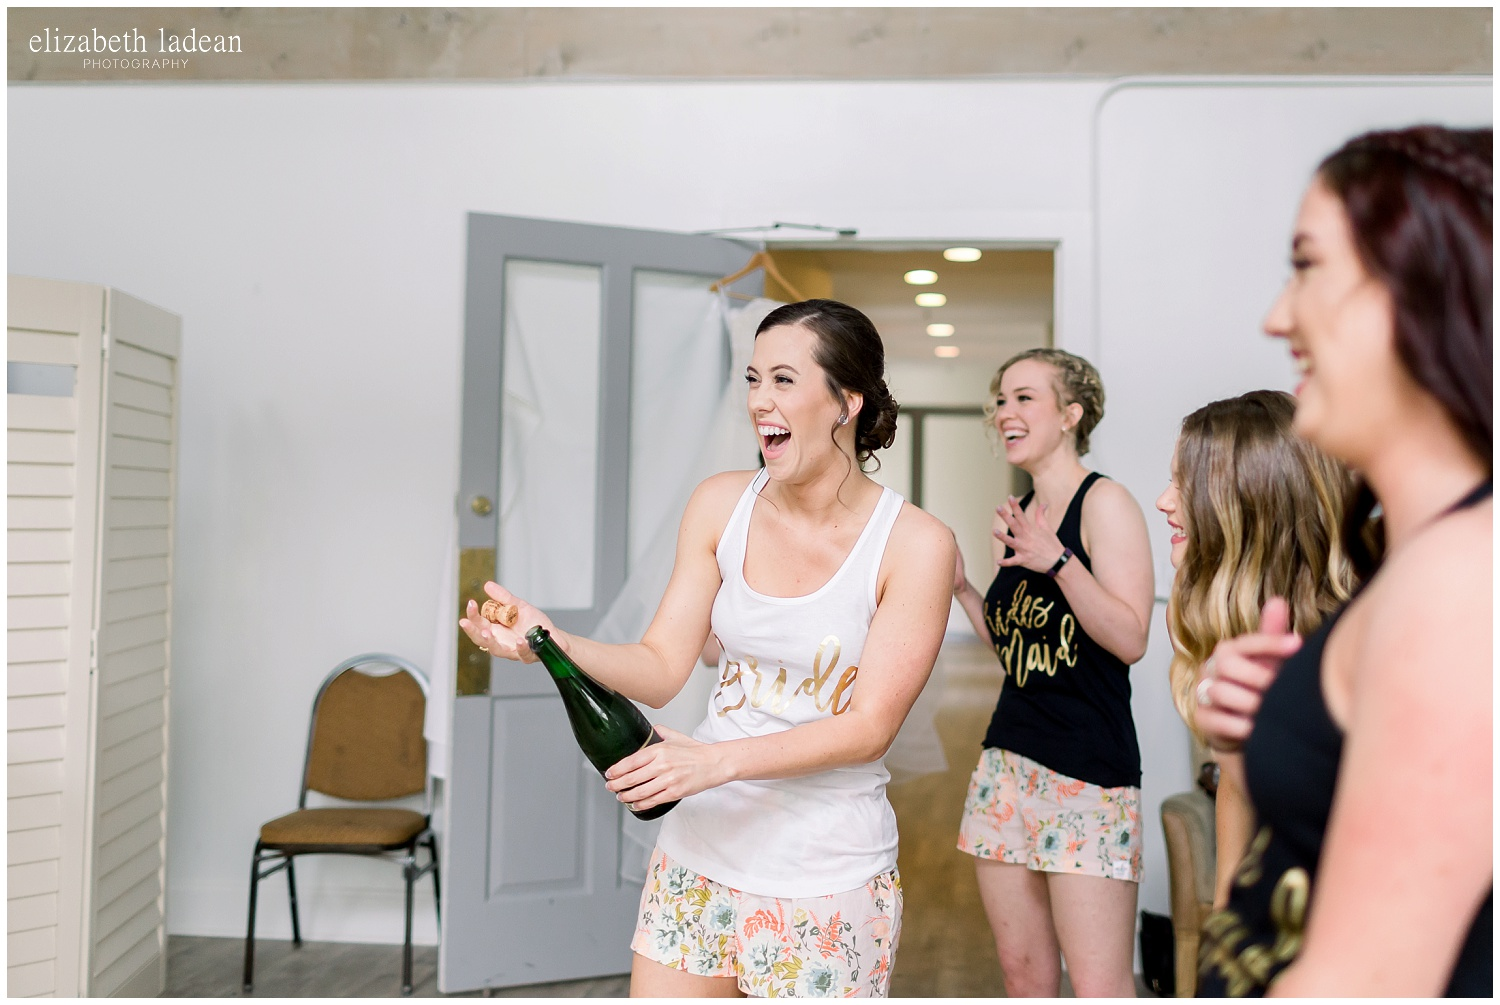 -behind-the-scenes-of-a-wedding-photographer-2018-elizabeth-ladean-photography-photo_3453.jpg